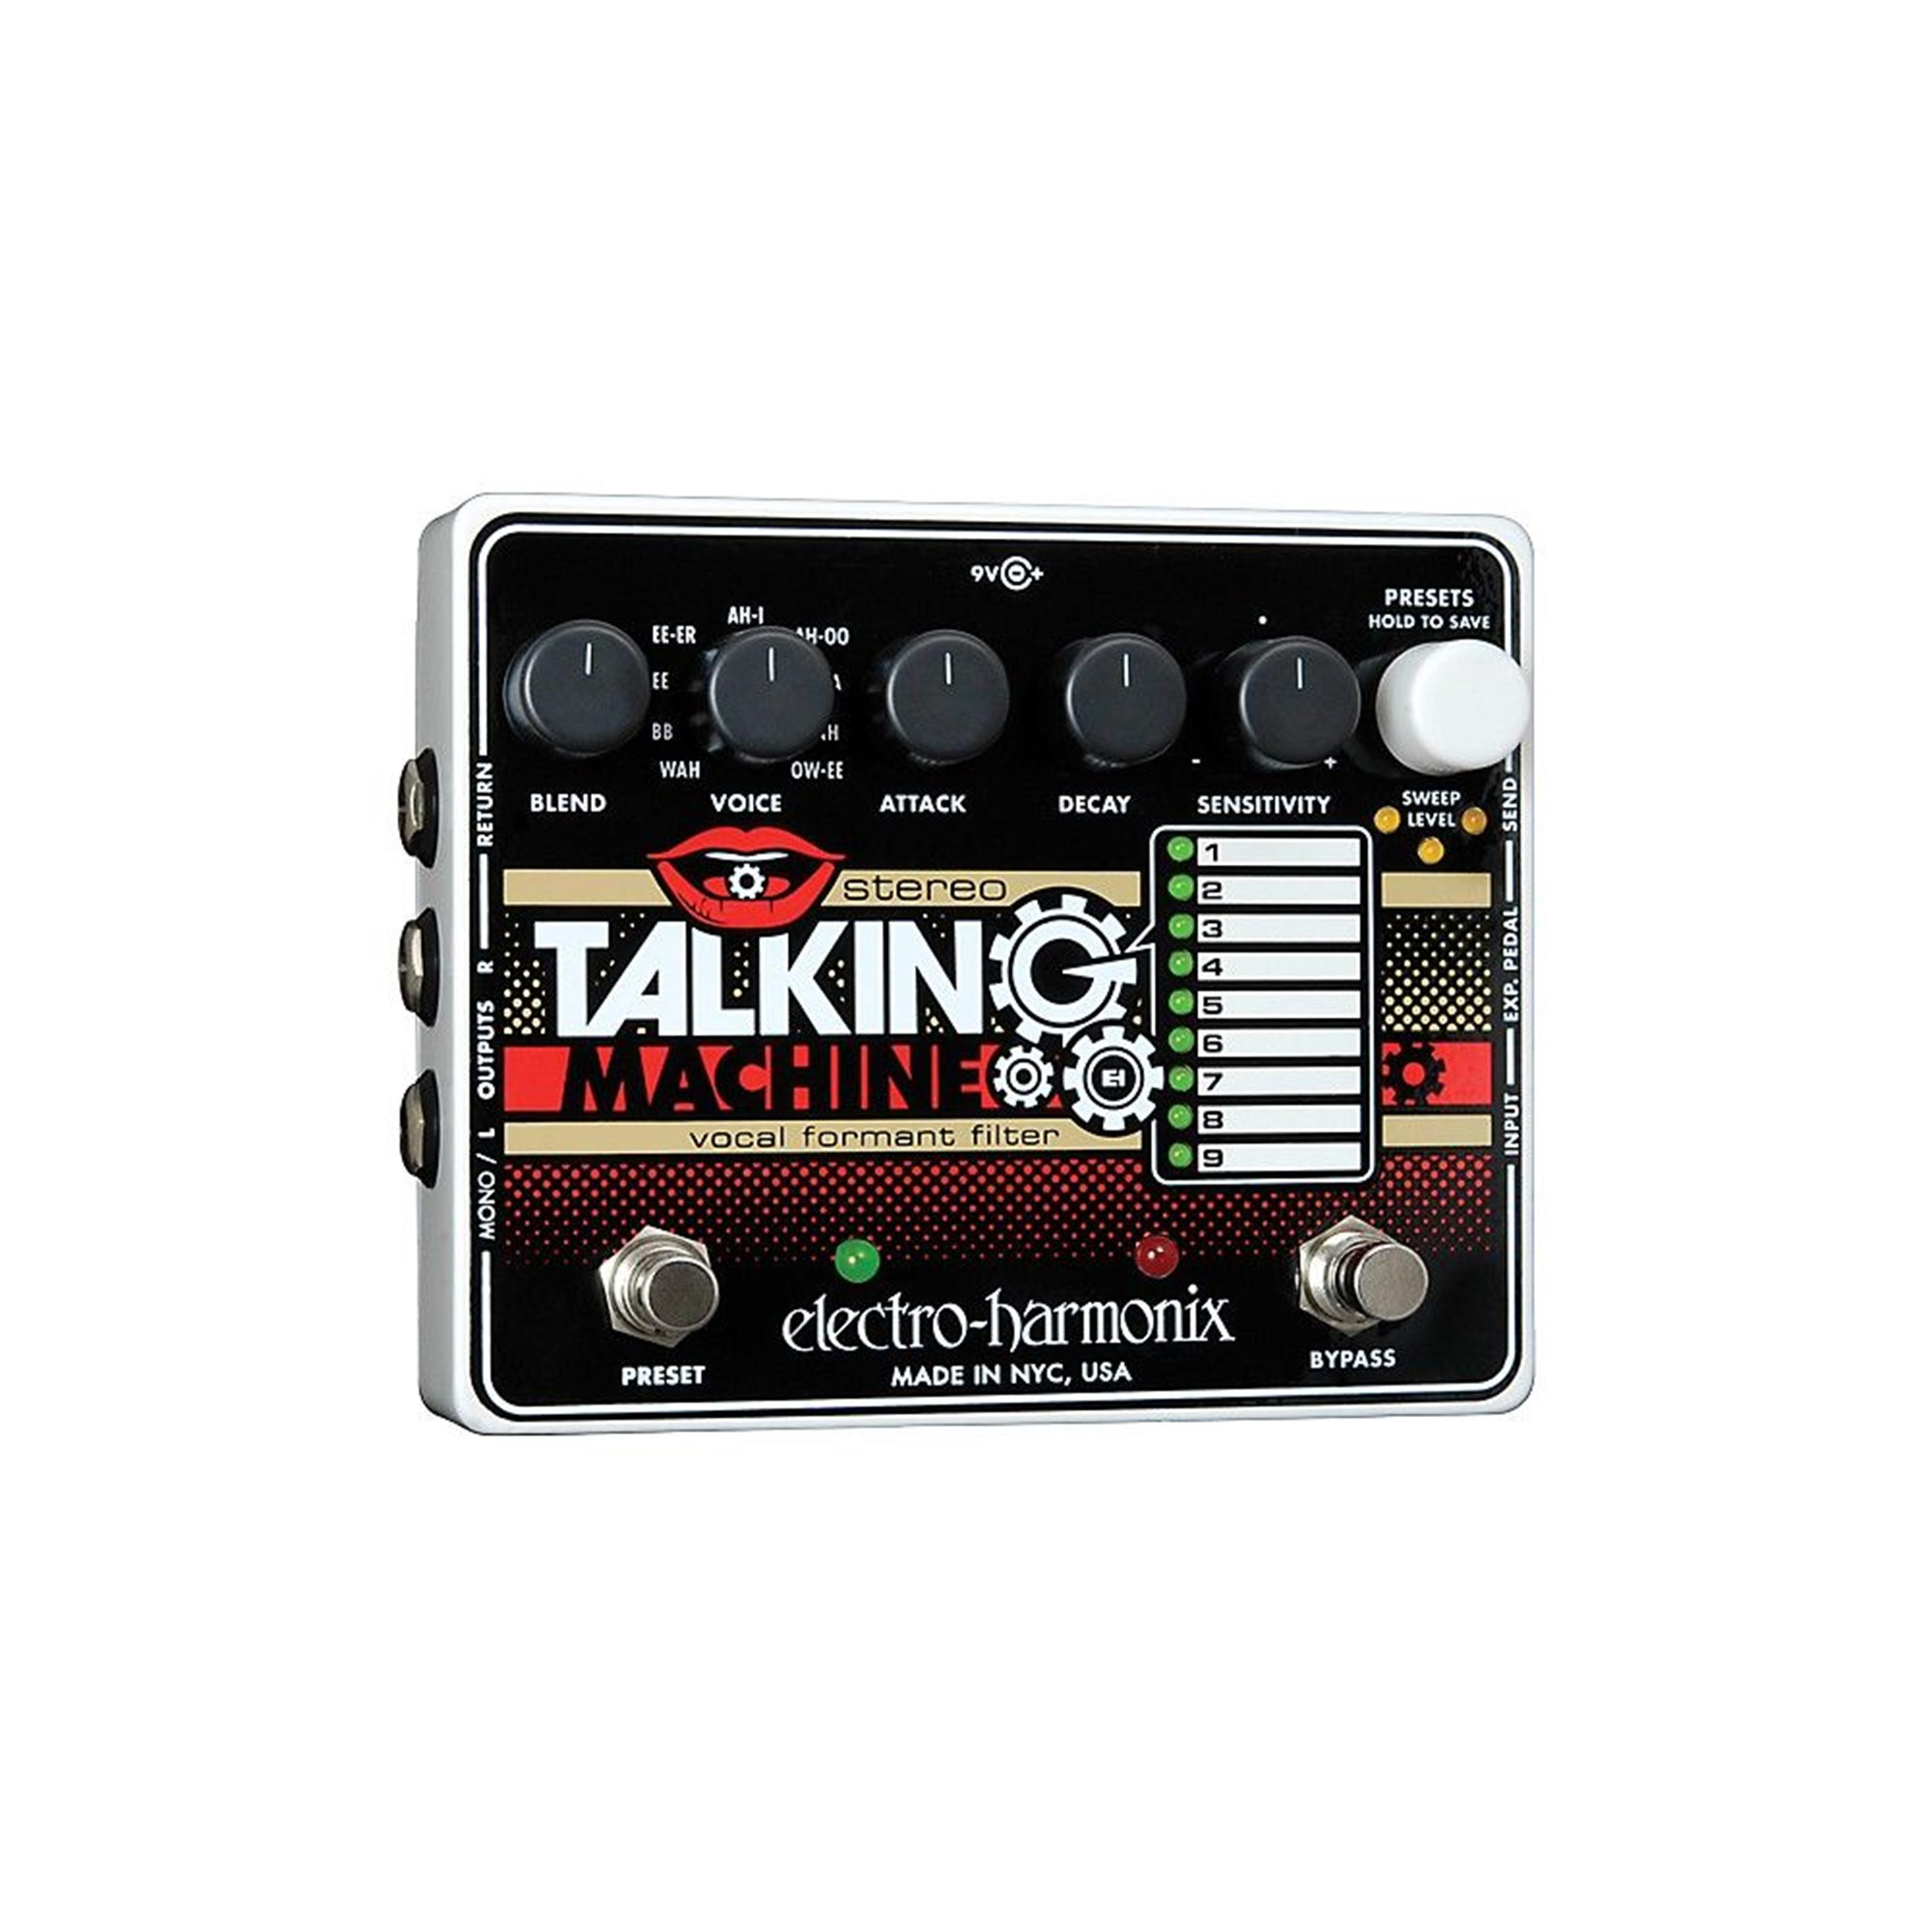 ELECTRO-HARMONIX-STEREO-TALKING-MACHINE-sku-6800